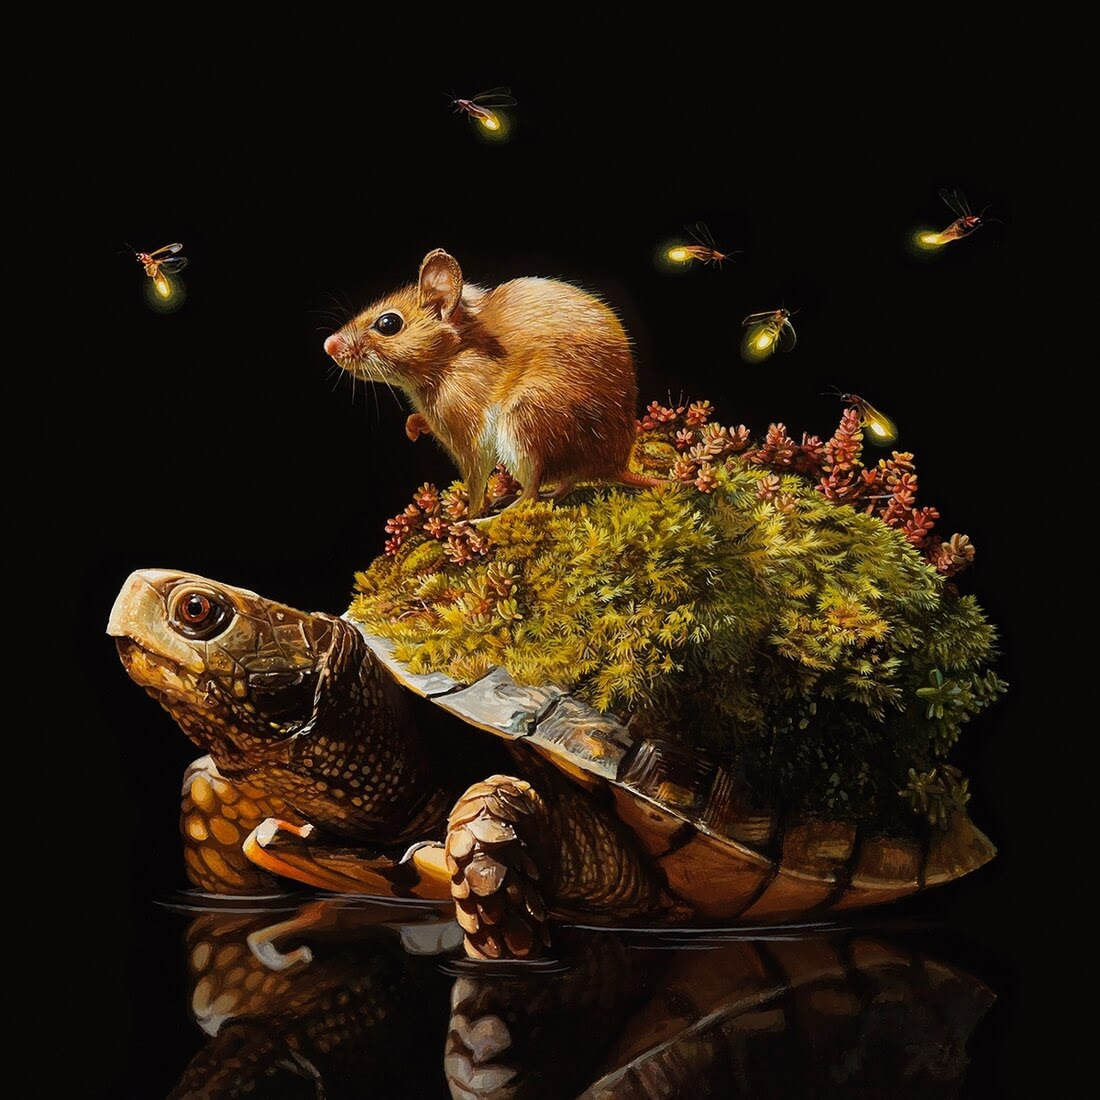 05-Island-Lisa-Ericson-Animals-Interspecies-Friendships-Paintings-www-designstack-co